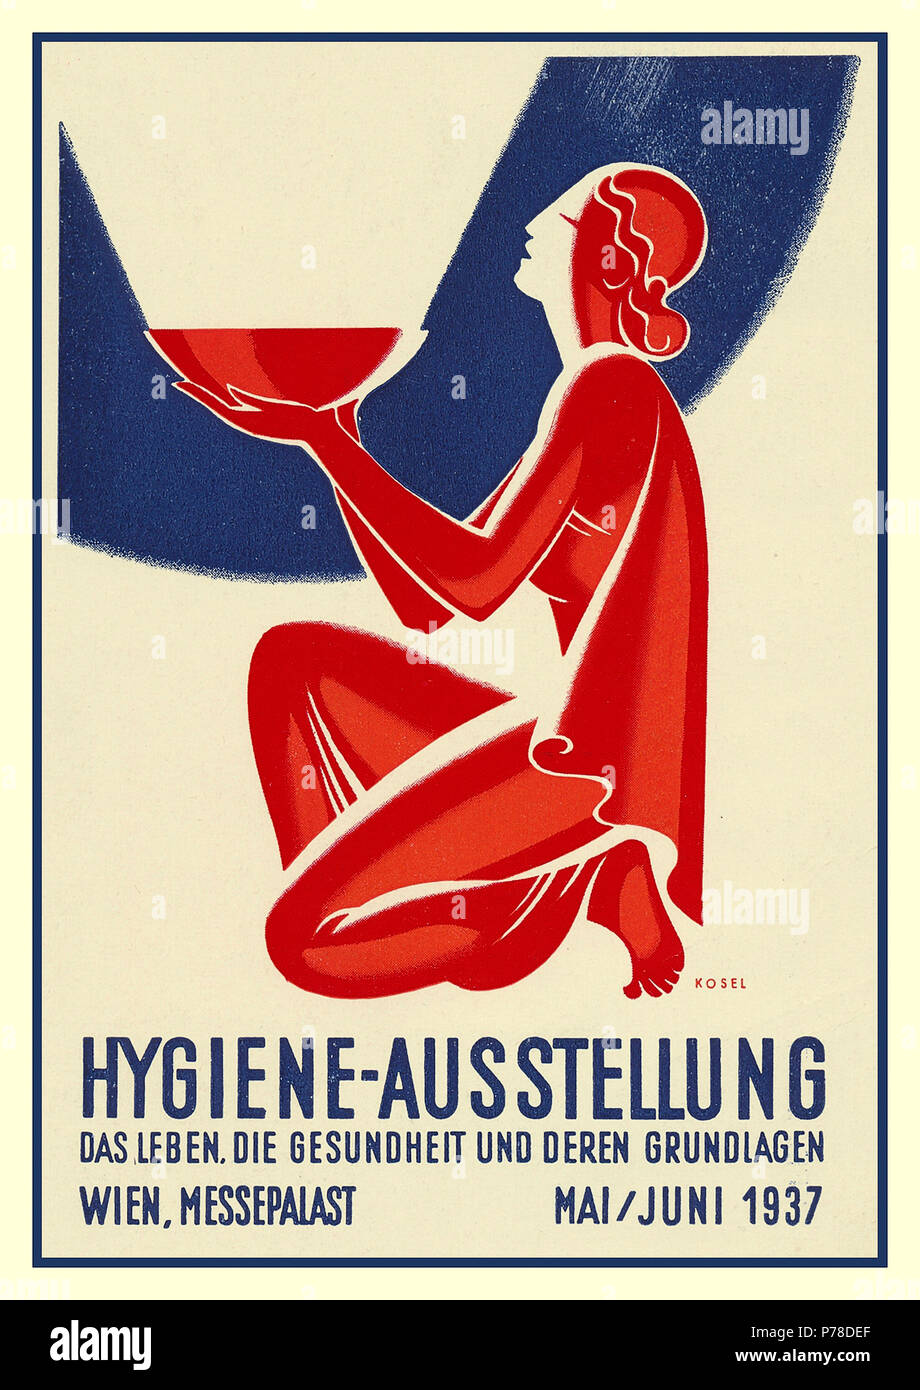 Vintage art nouveau 1937 Poster for Hygienic Exhibition in Vienna. Promotional Poster/Postcard by artist Kosel HYGIENE-AUSSTELLUNG Vienna Artist Postcard Hygiene Exhibition 1937 in the Messepalast   ' life is health and its foundations' - Stock Image